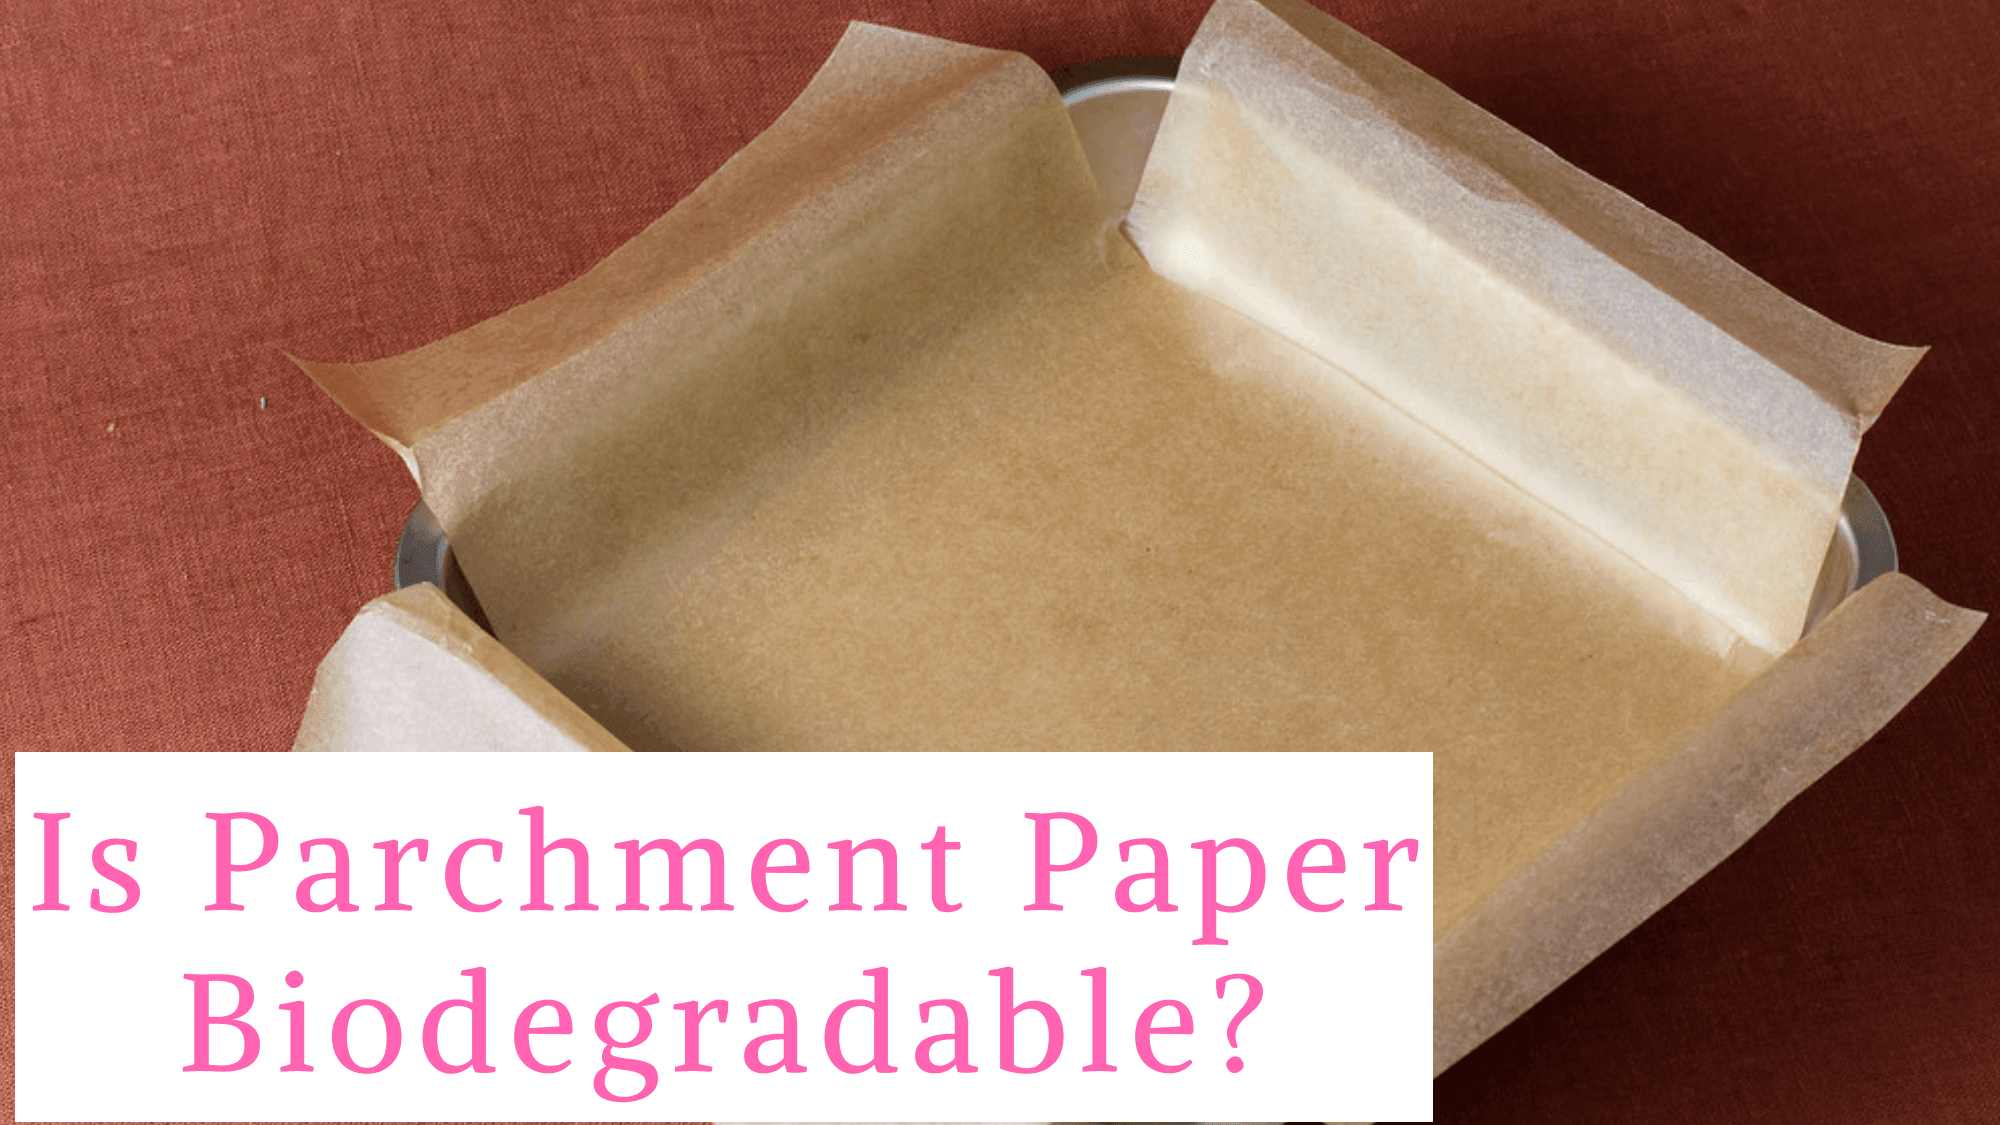 Is Parchment Paper Biodegradable and Compostable?